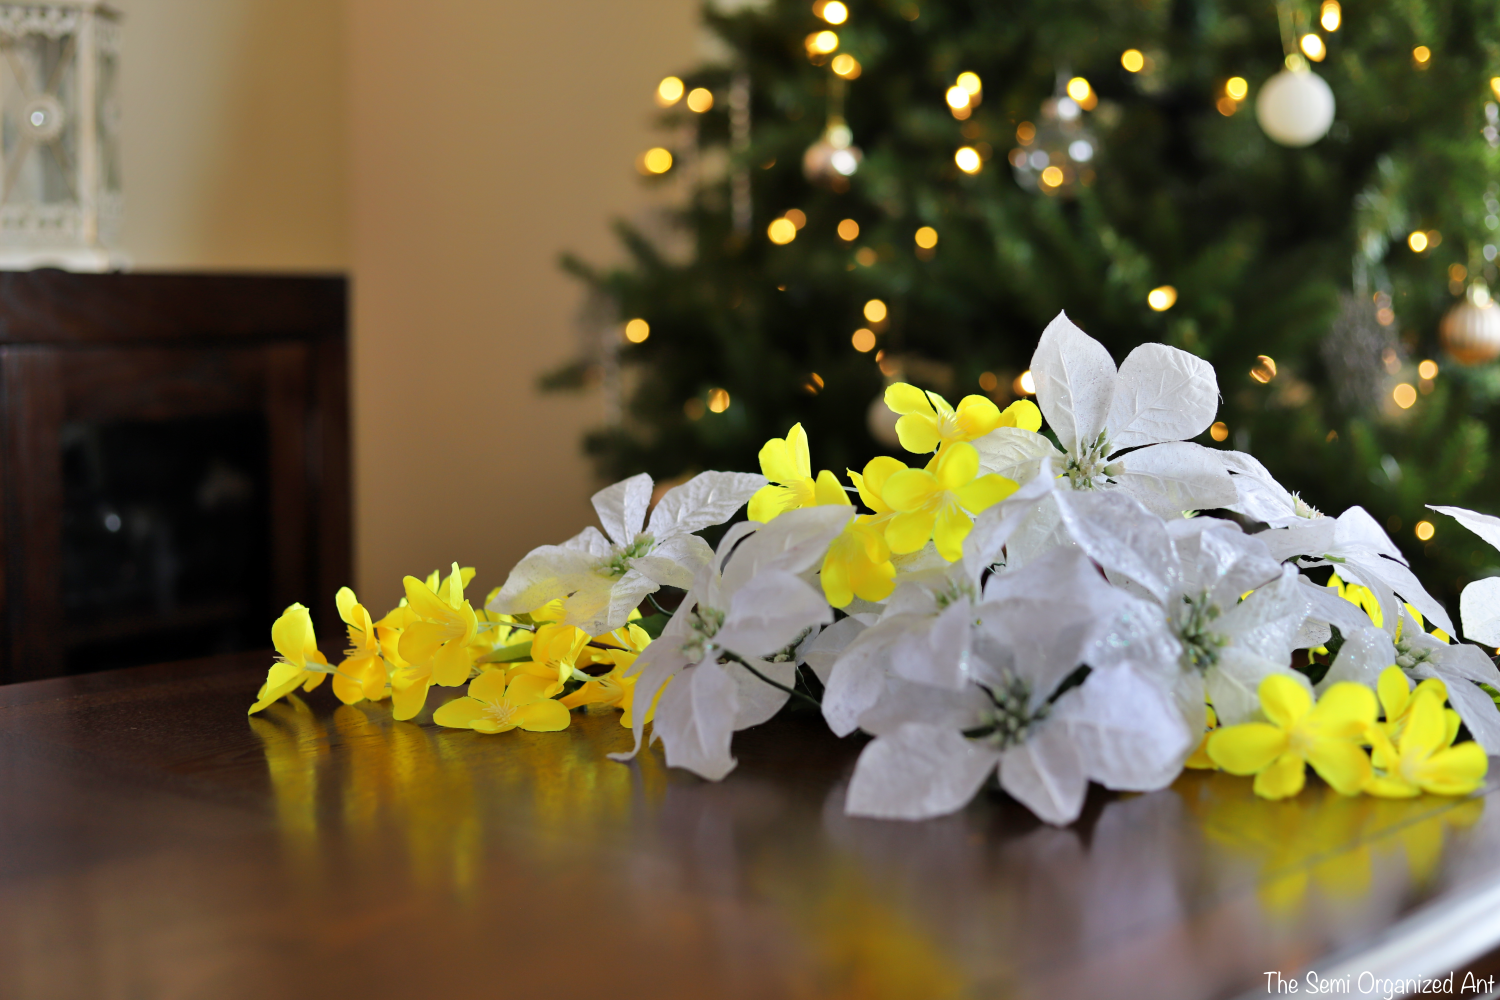 Bright and Cheerful Christmas Centerpiece - The Semi Organized Ant